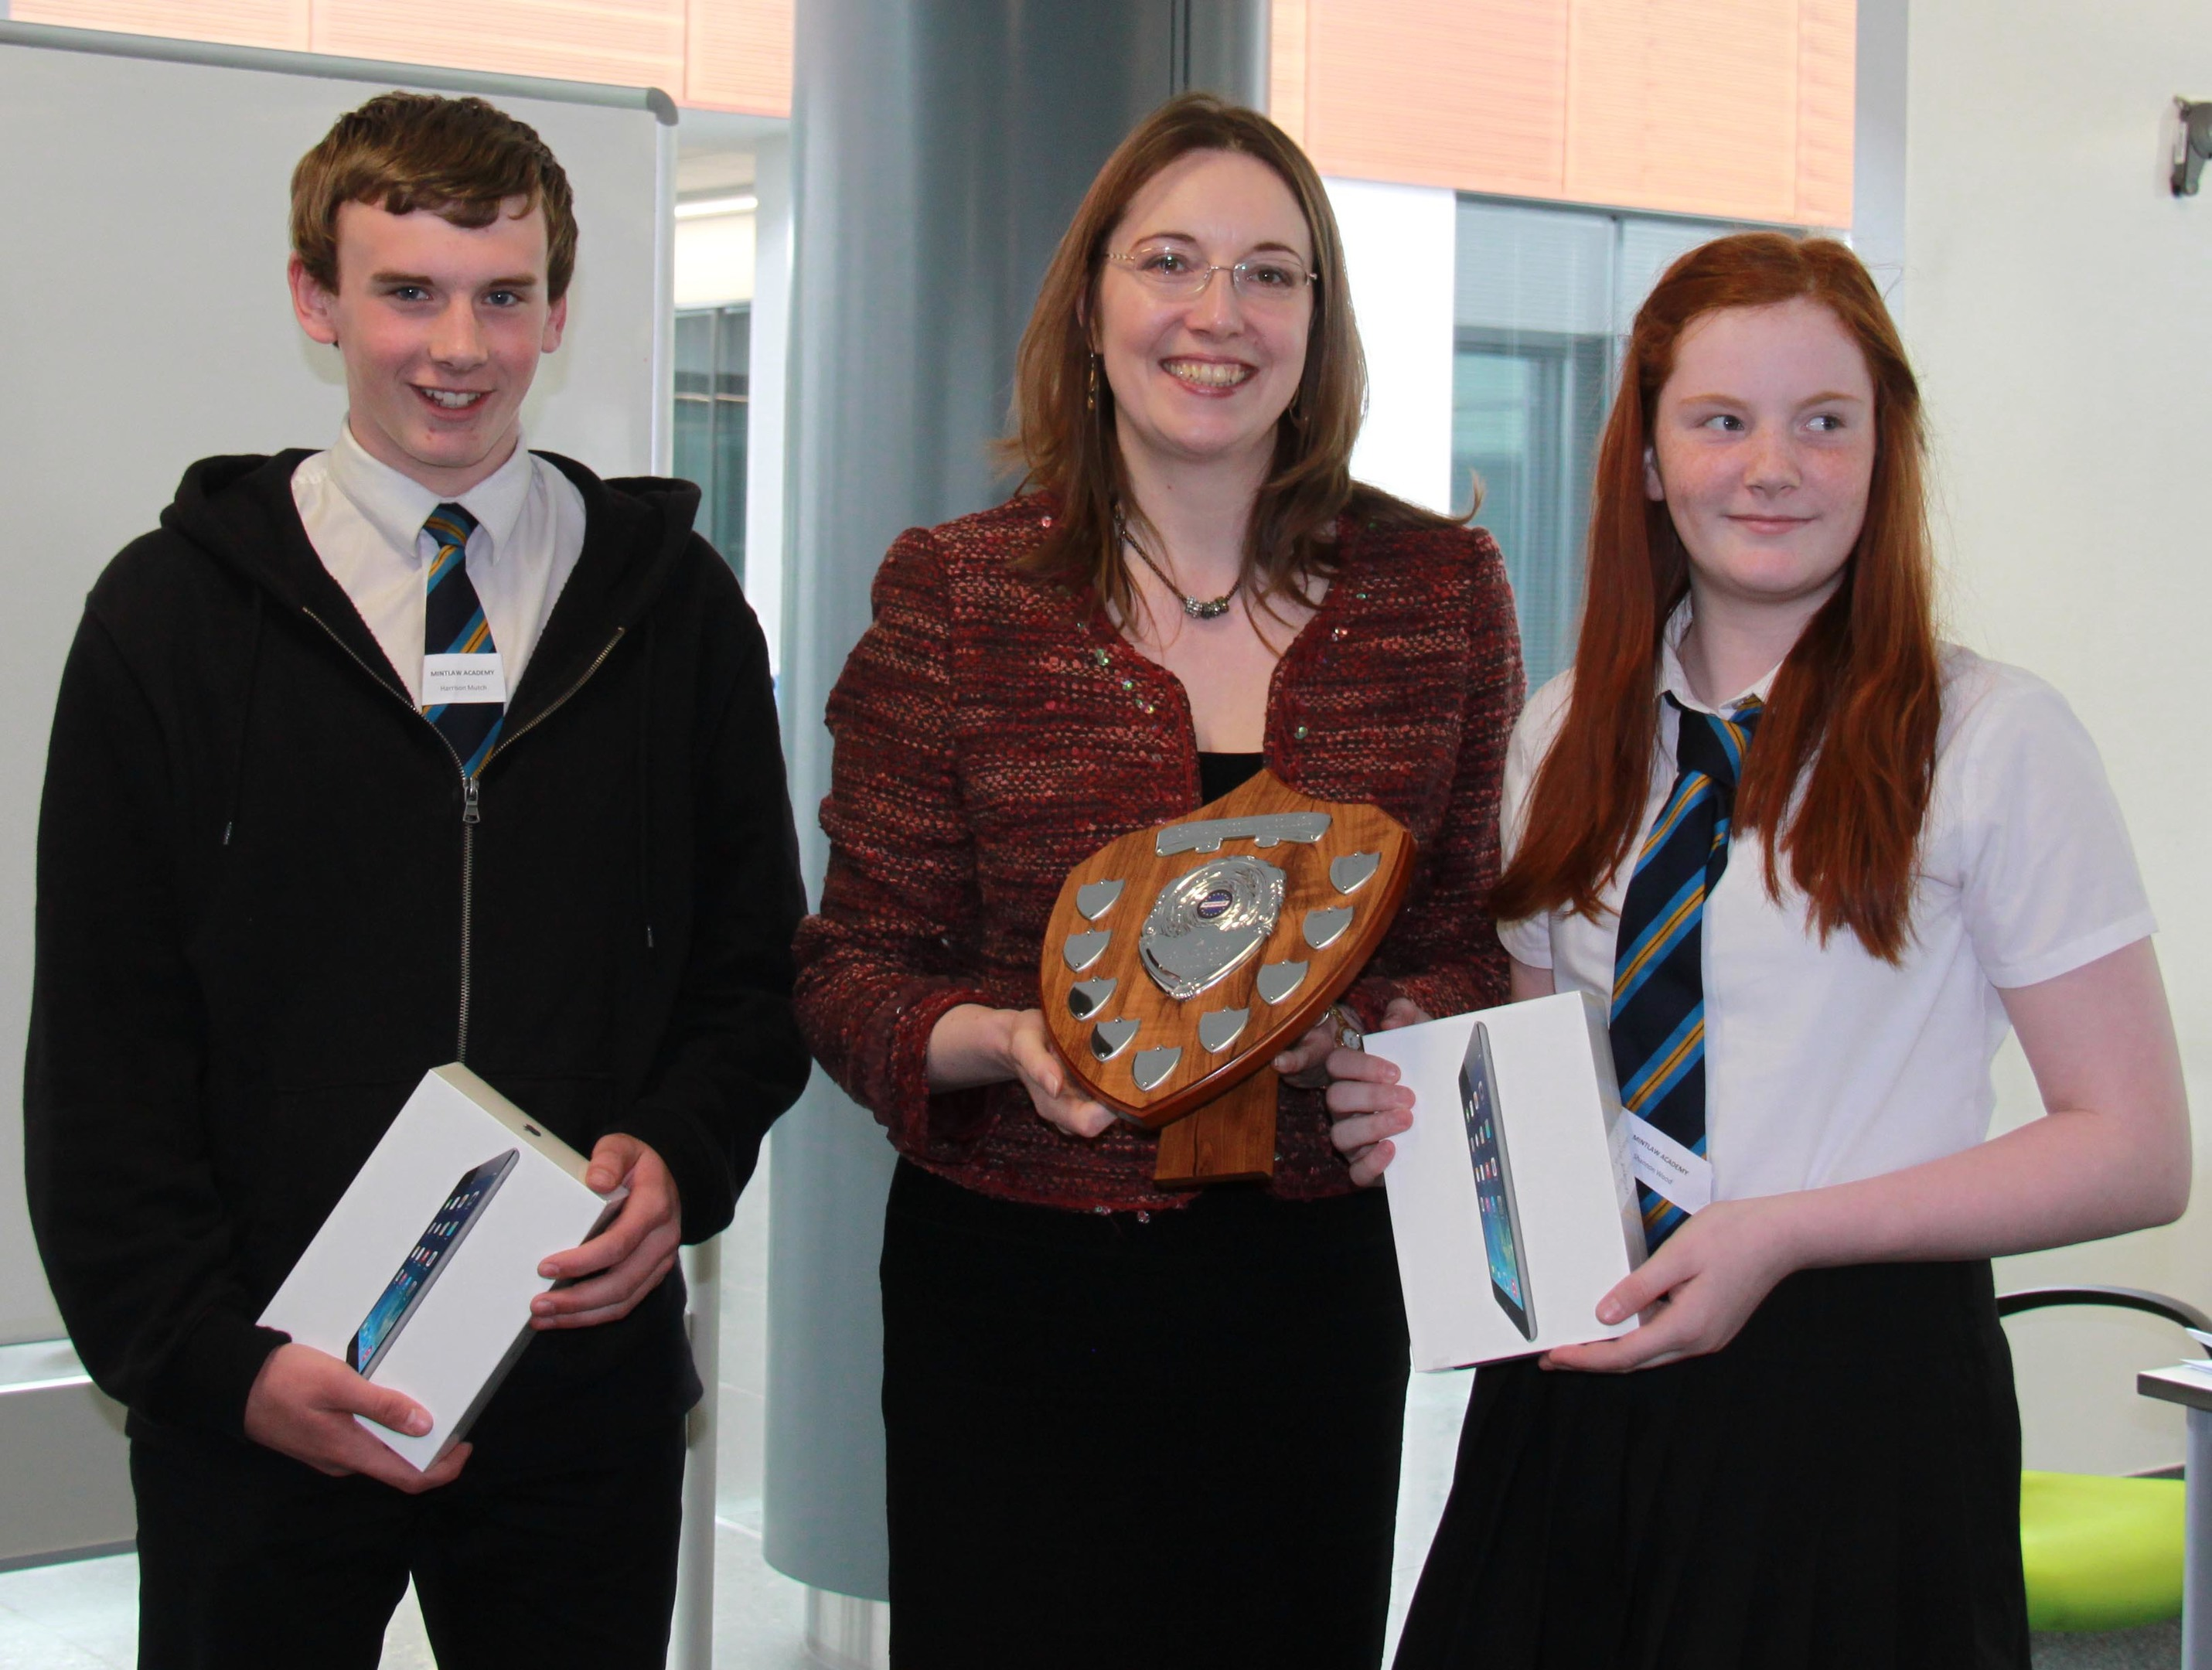 Harrison Mutch and Shannon Wood of Mintlaw Academy collect their prizes from MP Eilidh Whiteford.